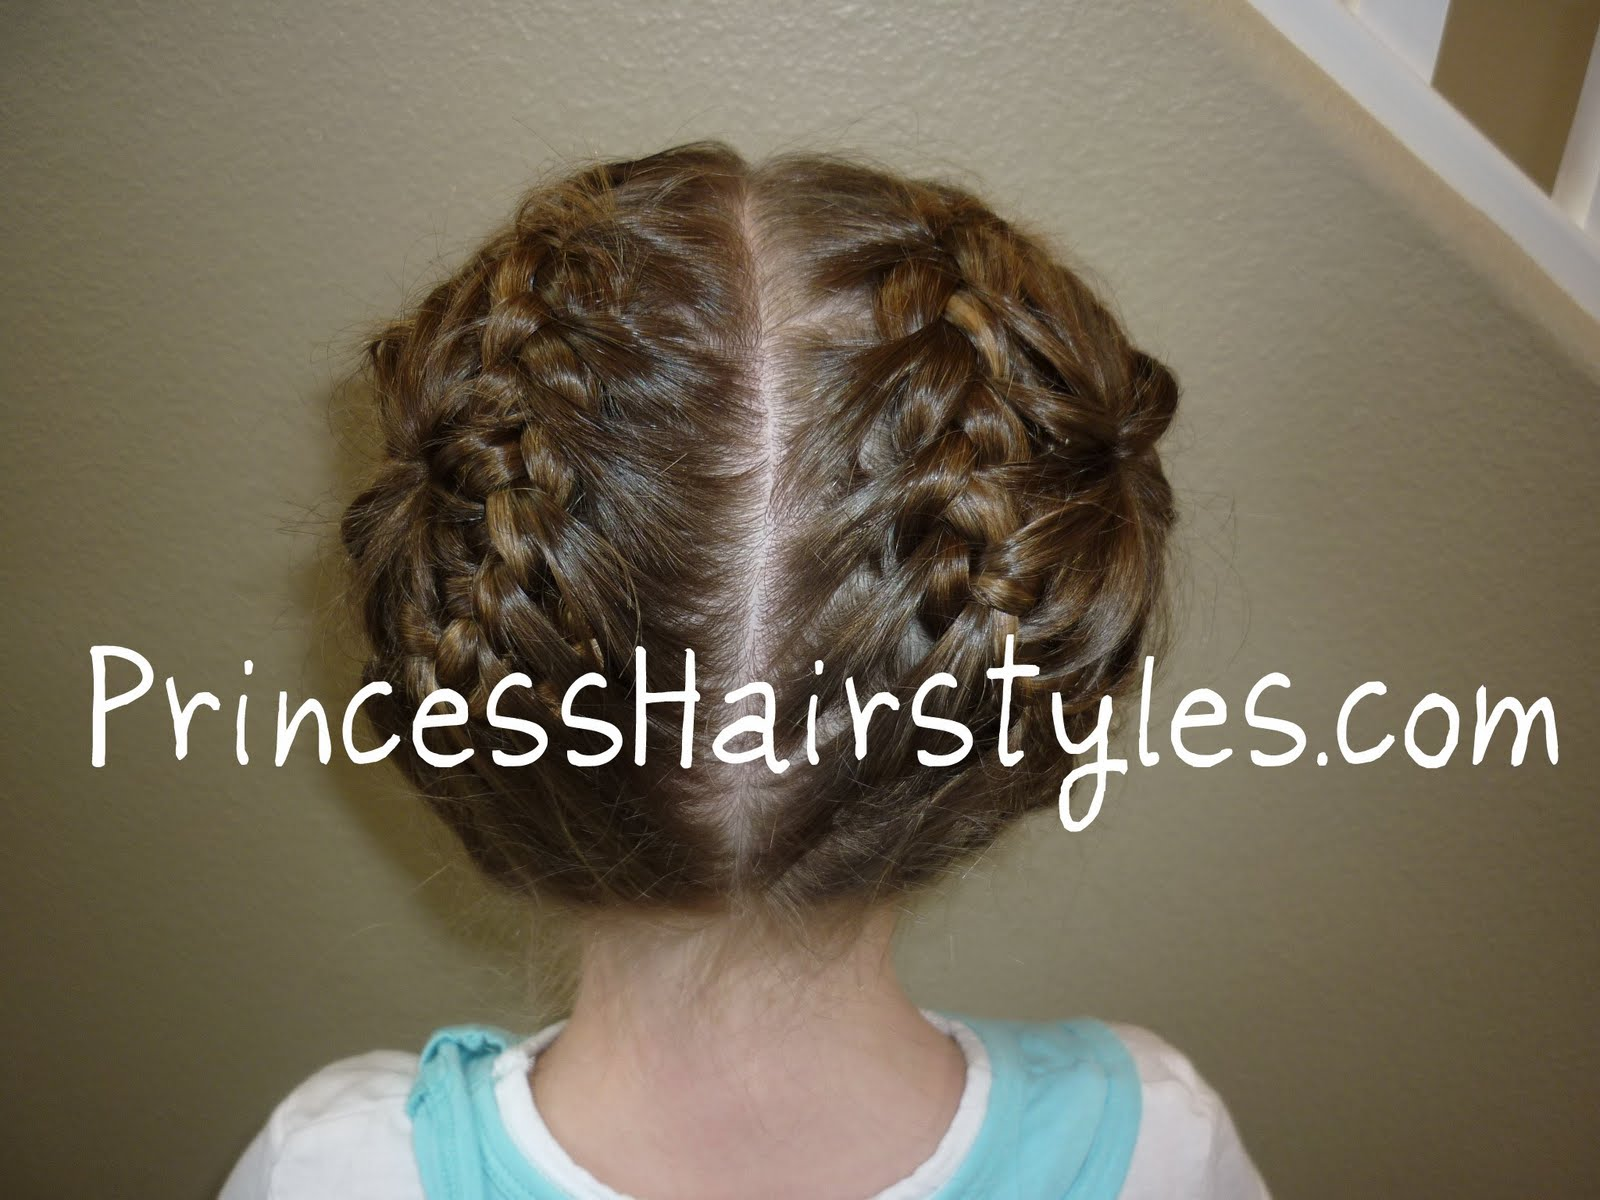 Kids Hairstyles Awww What A Cute Look To Give Your Little Just Brush The Hair All One Side And Knot French Braid From Middle Top